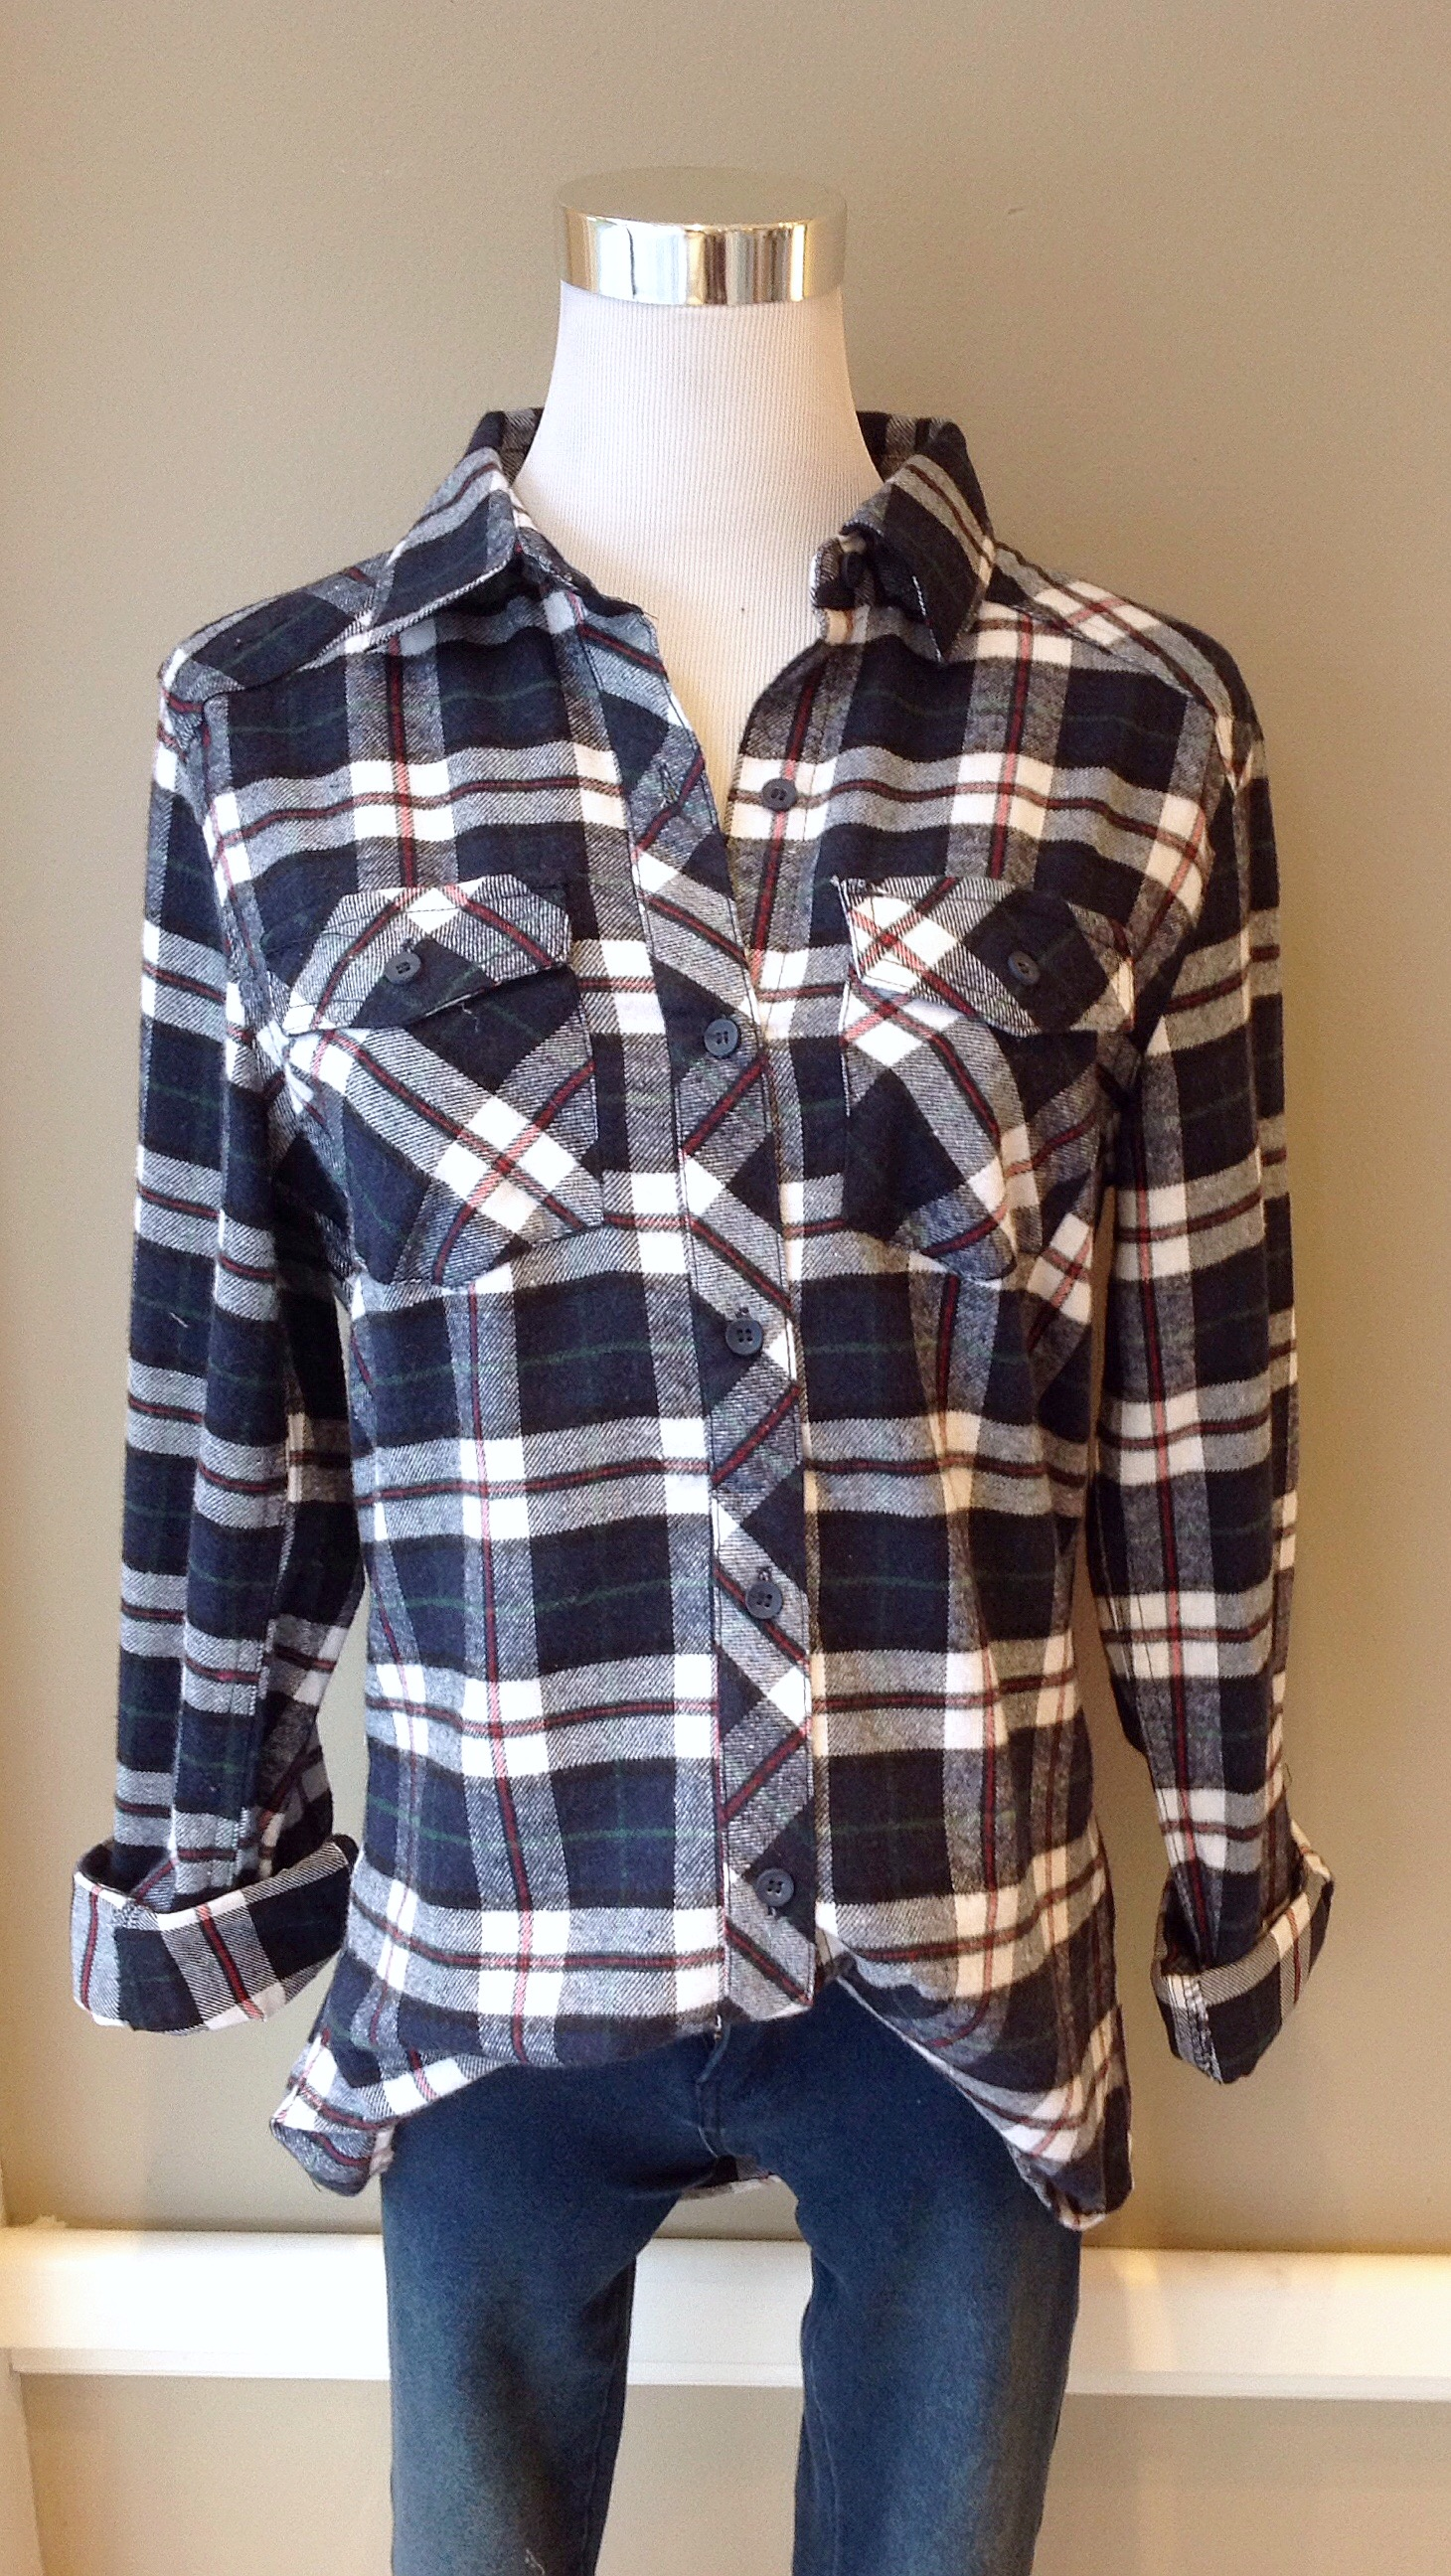 Cotton flannel shirt in navy/white/red/green, $34